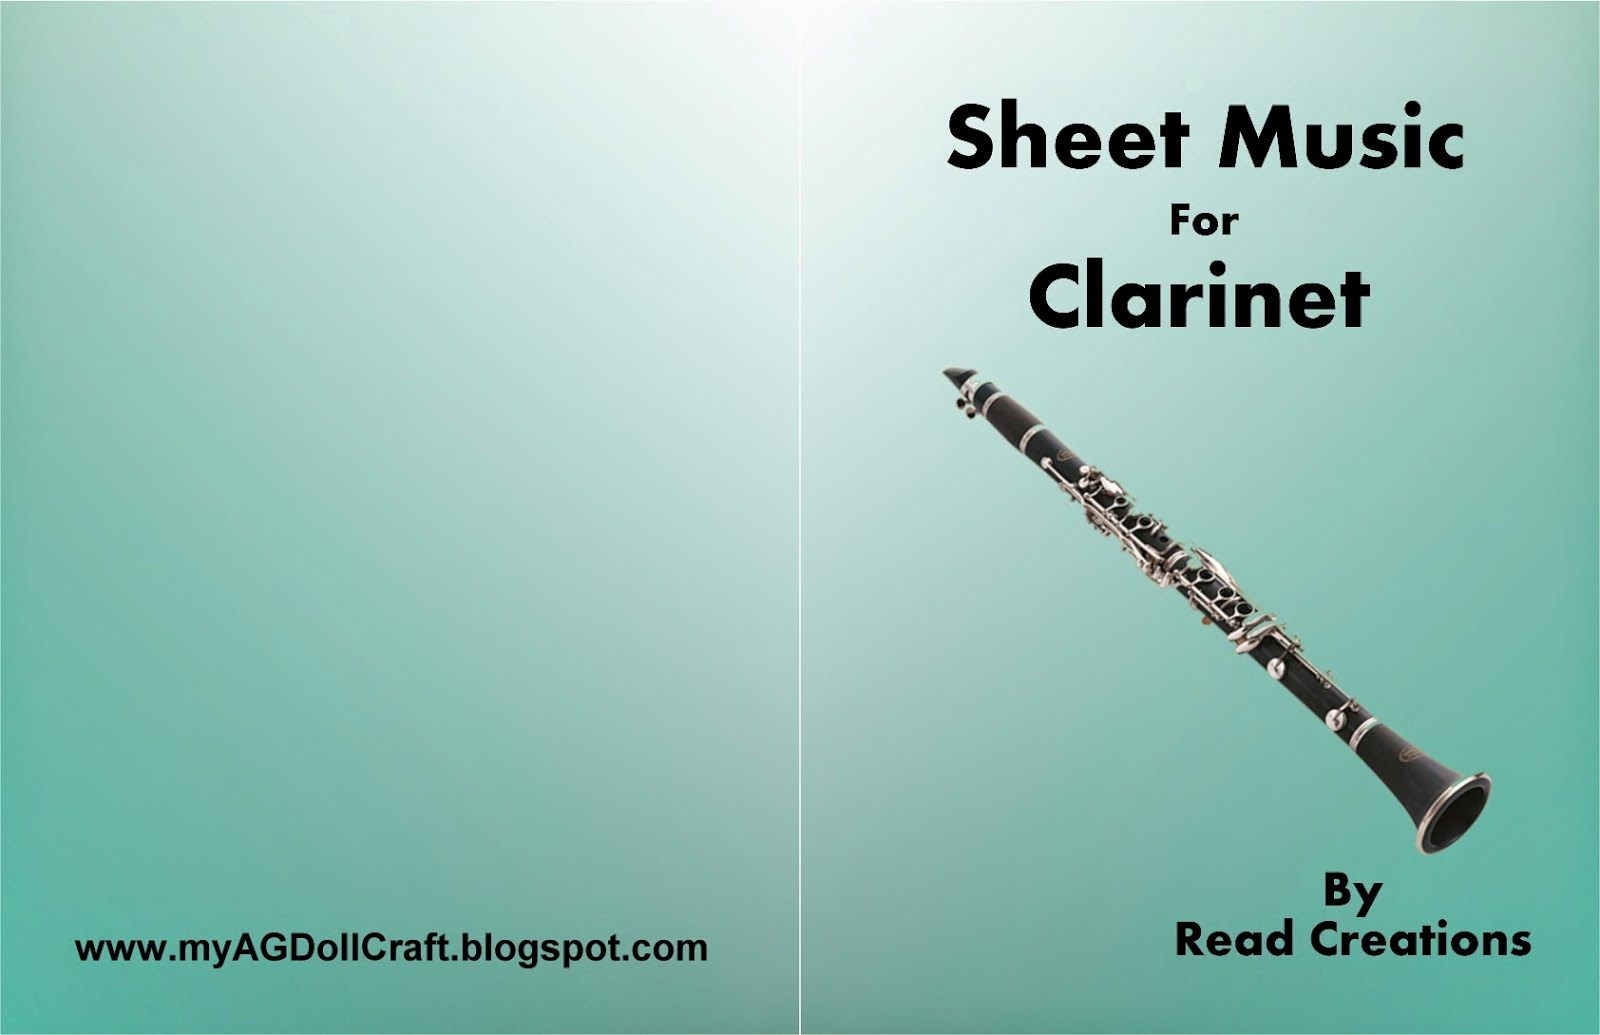 Clarinette book cover